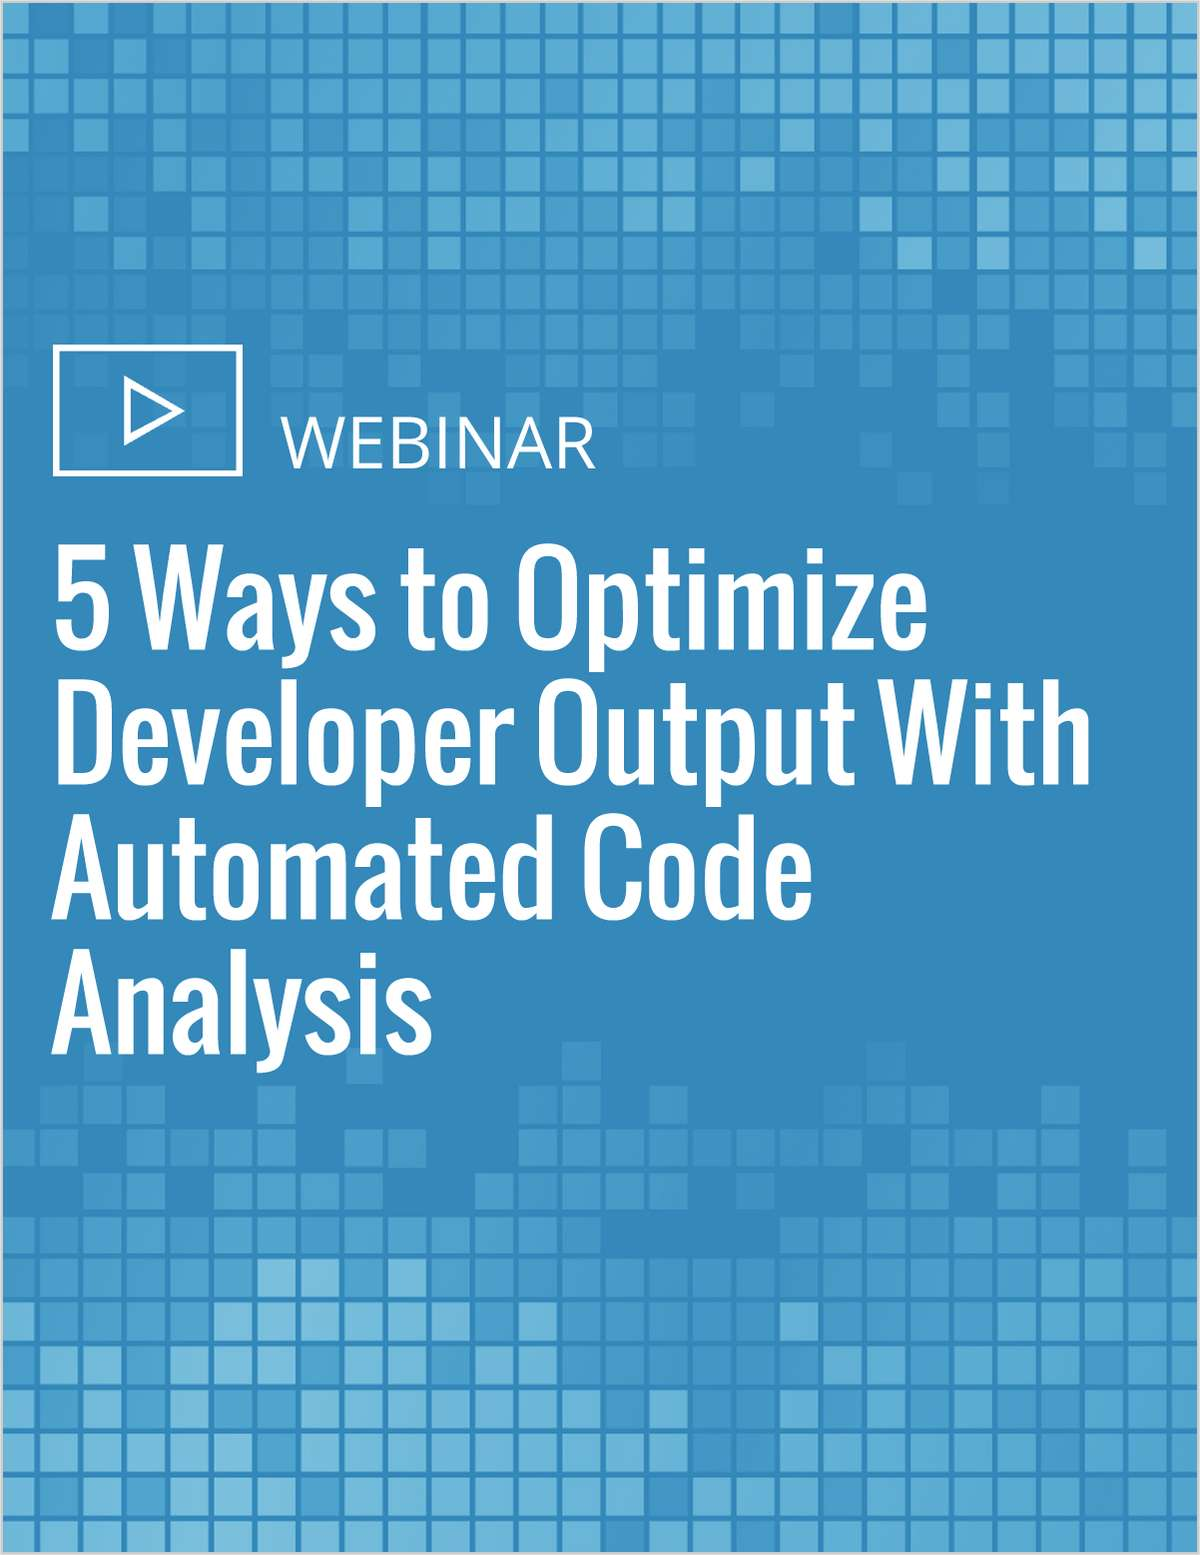 5 Ways to Optimize Developer Output With Automated Code Analysis